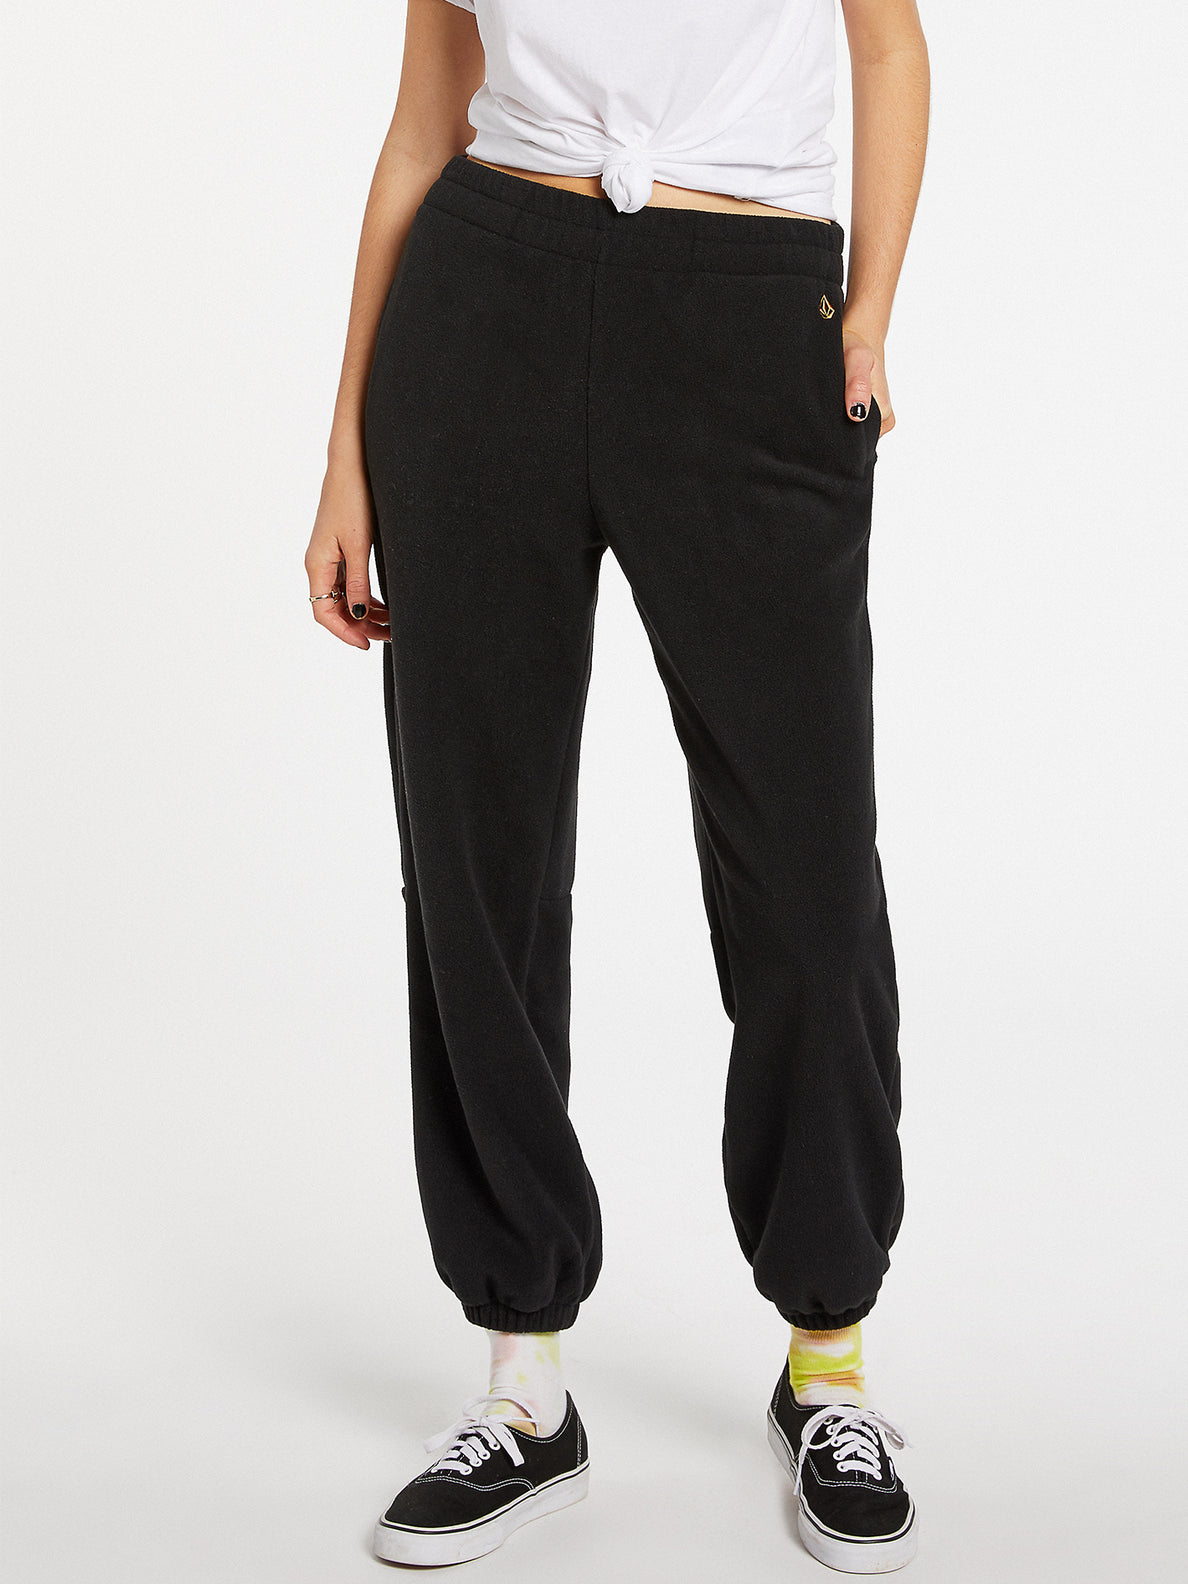 Up In The Nub Pants - Black (B1232000_BLK) [03]